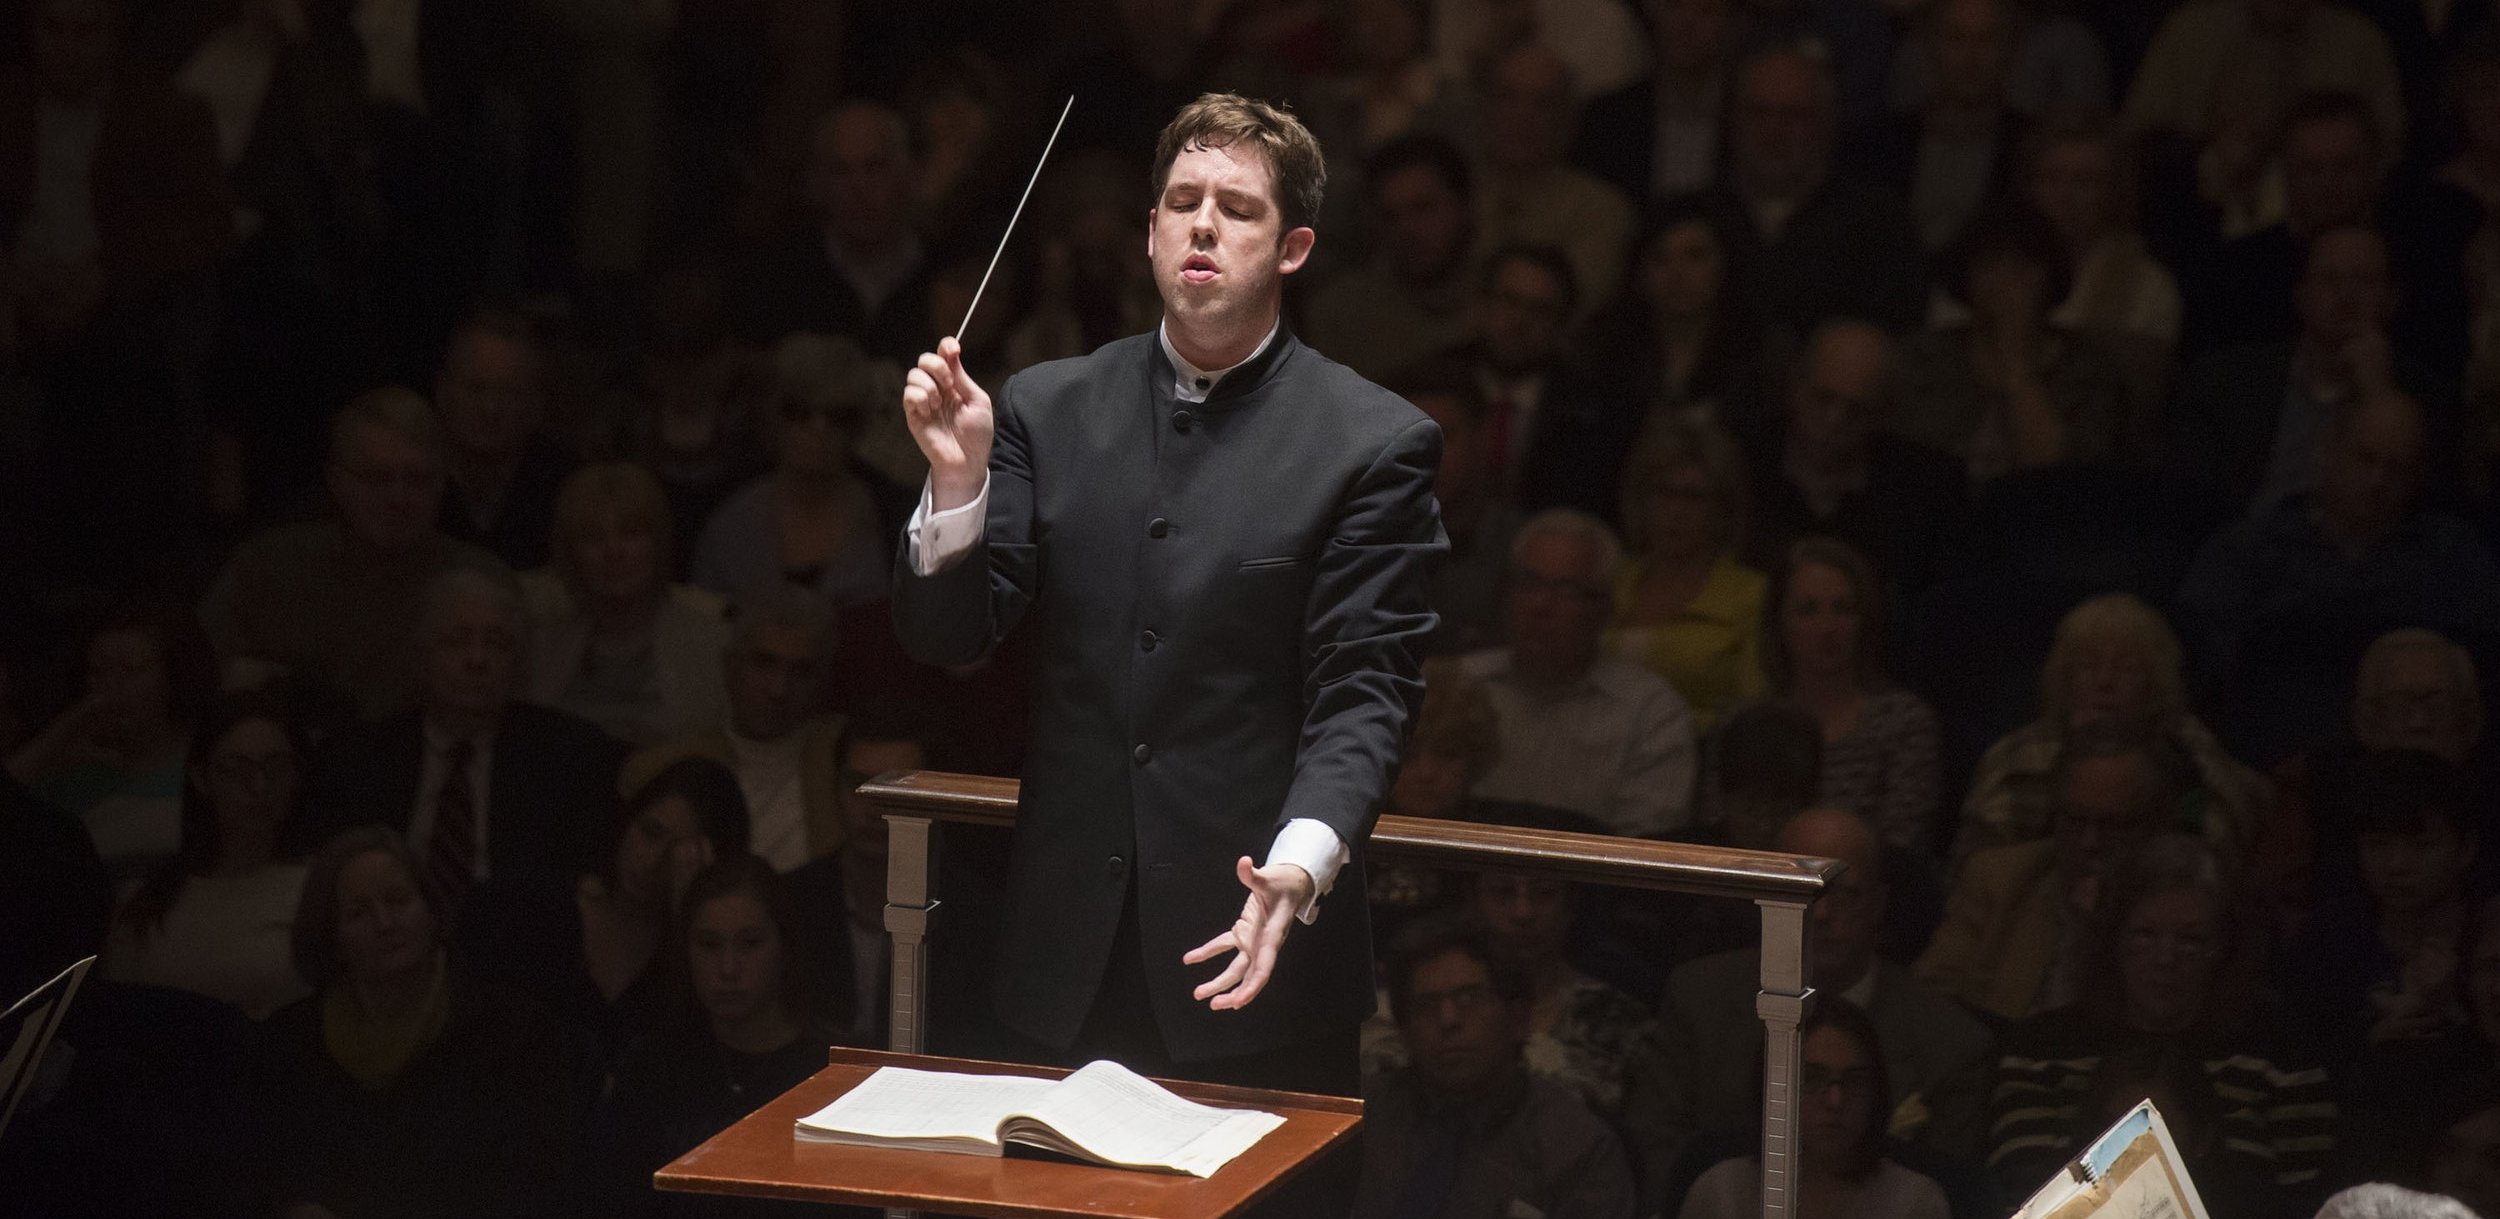 Brett Mitchell will lead The Cleveland Orchestra in a subscription program of three American works this weekend at Severance Hall. (Photo by Roger Mastroianni)